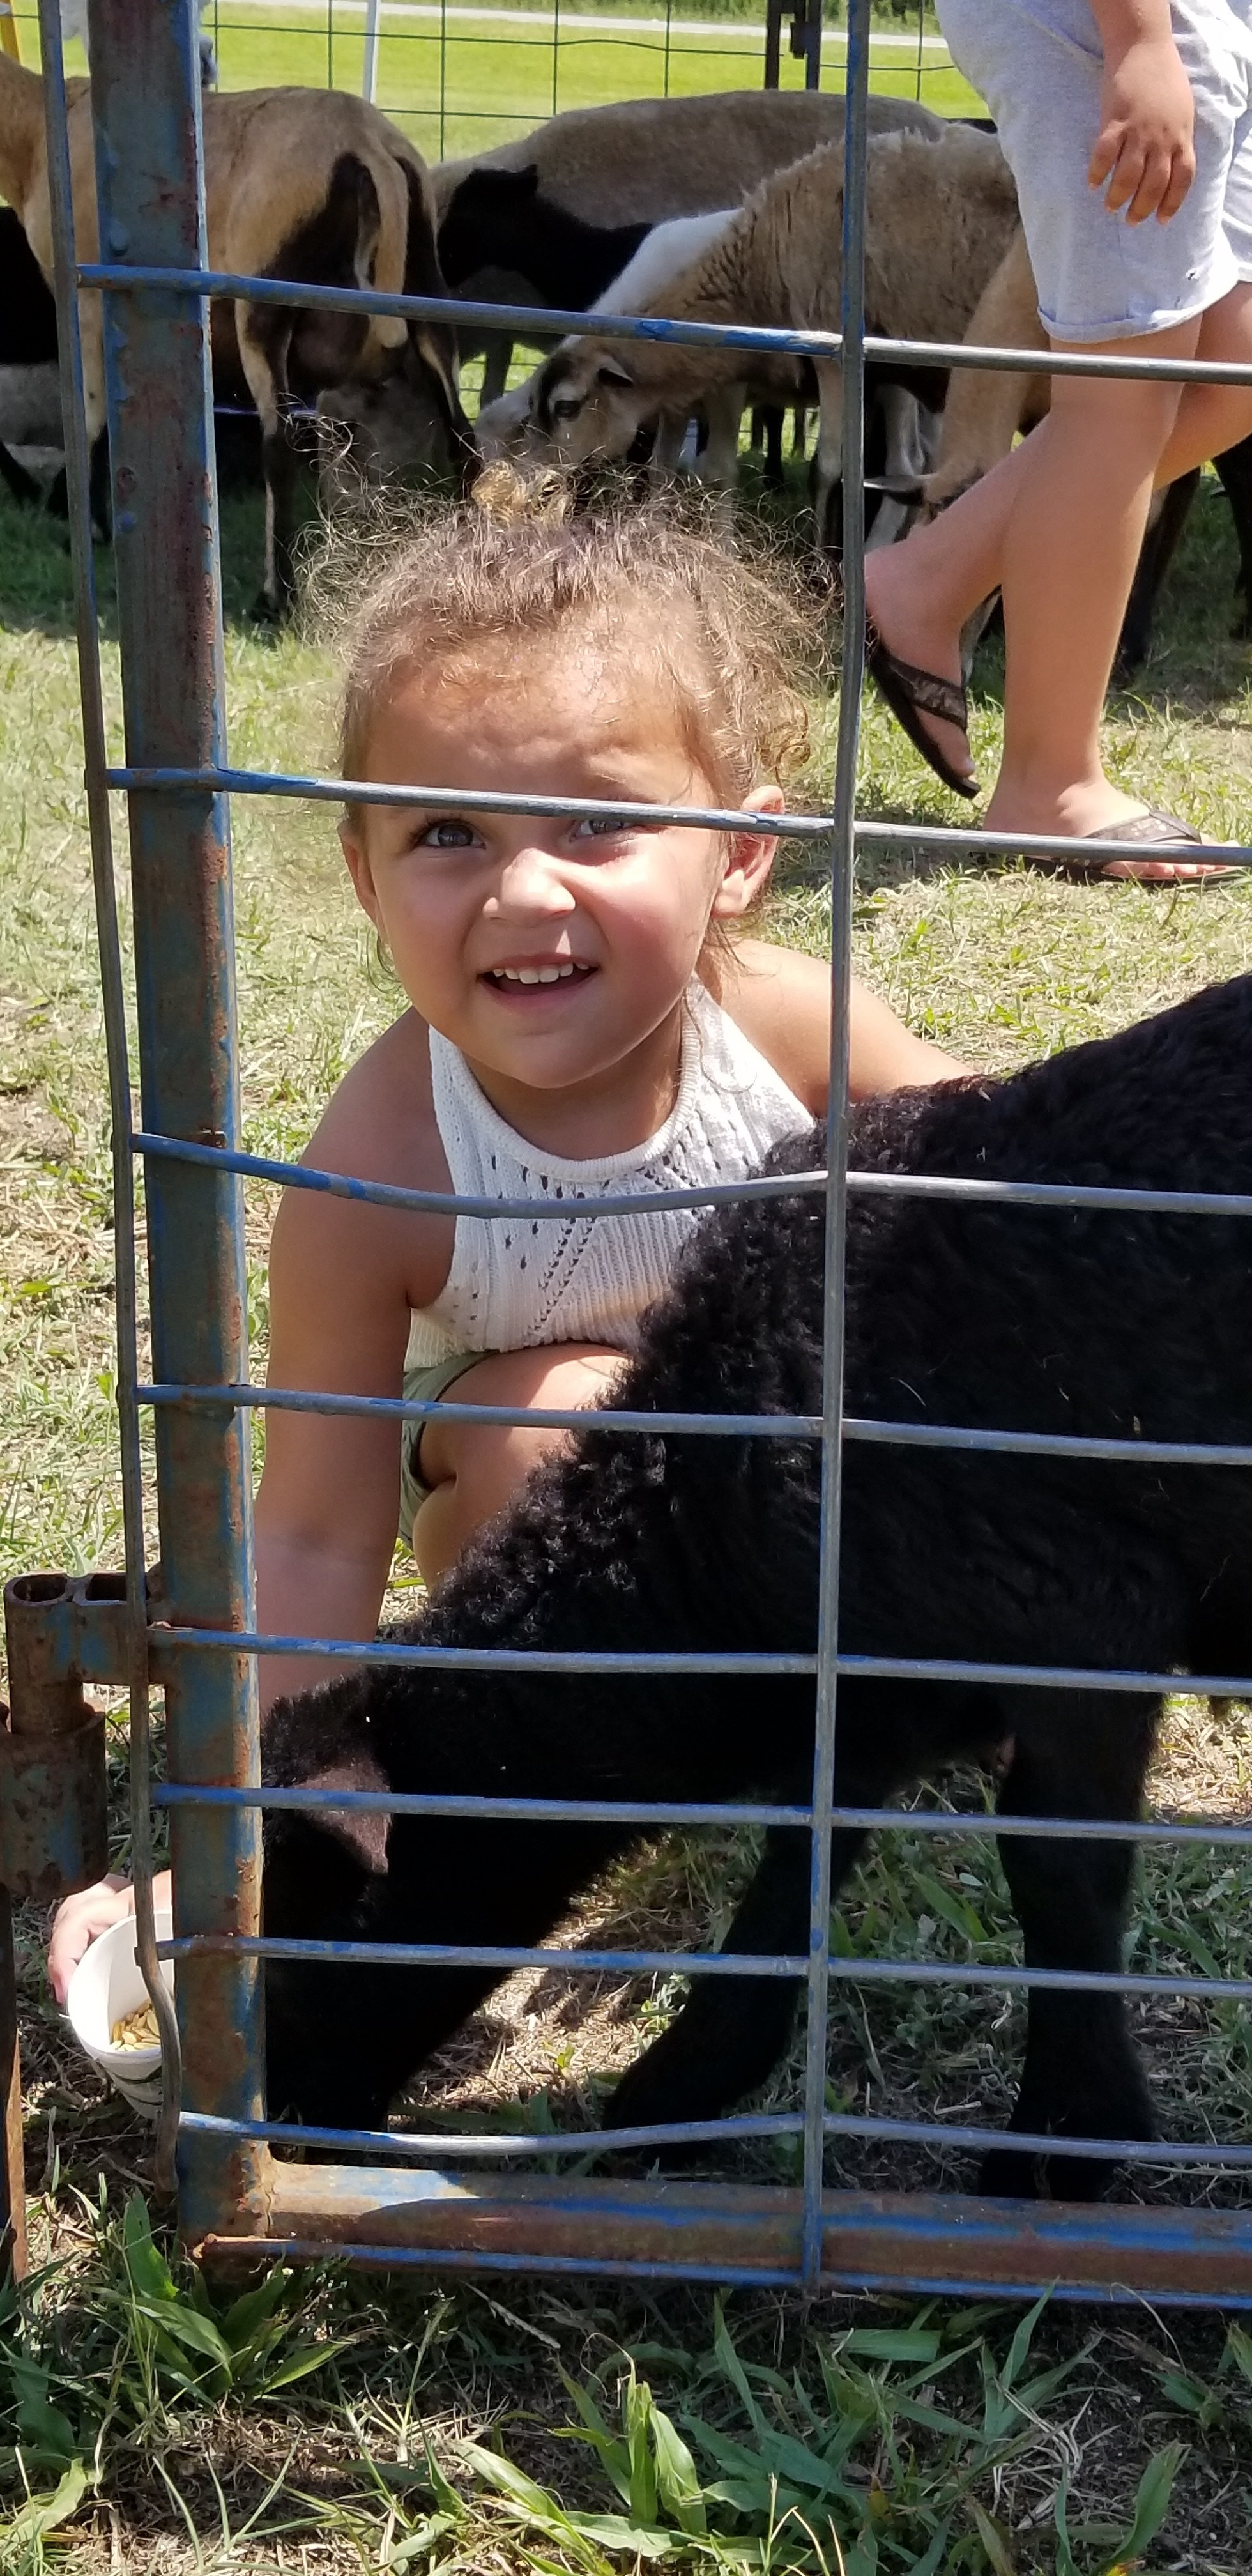 PZ_girl toddler with goat